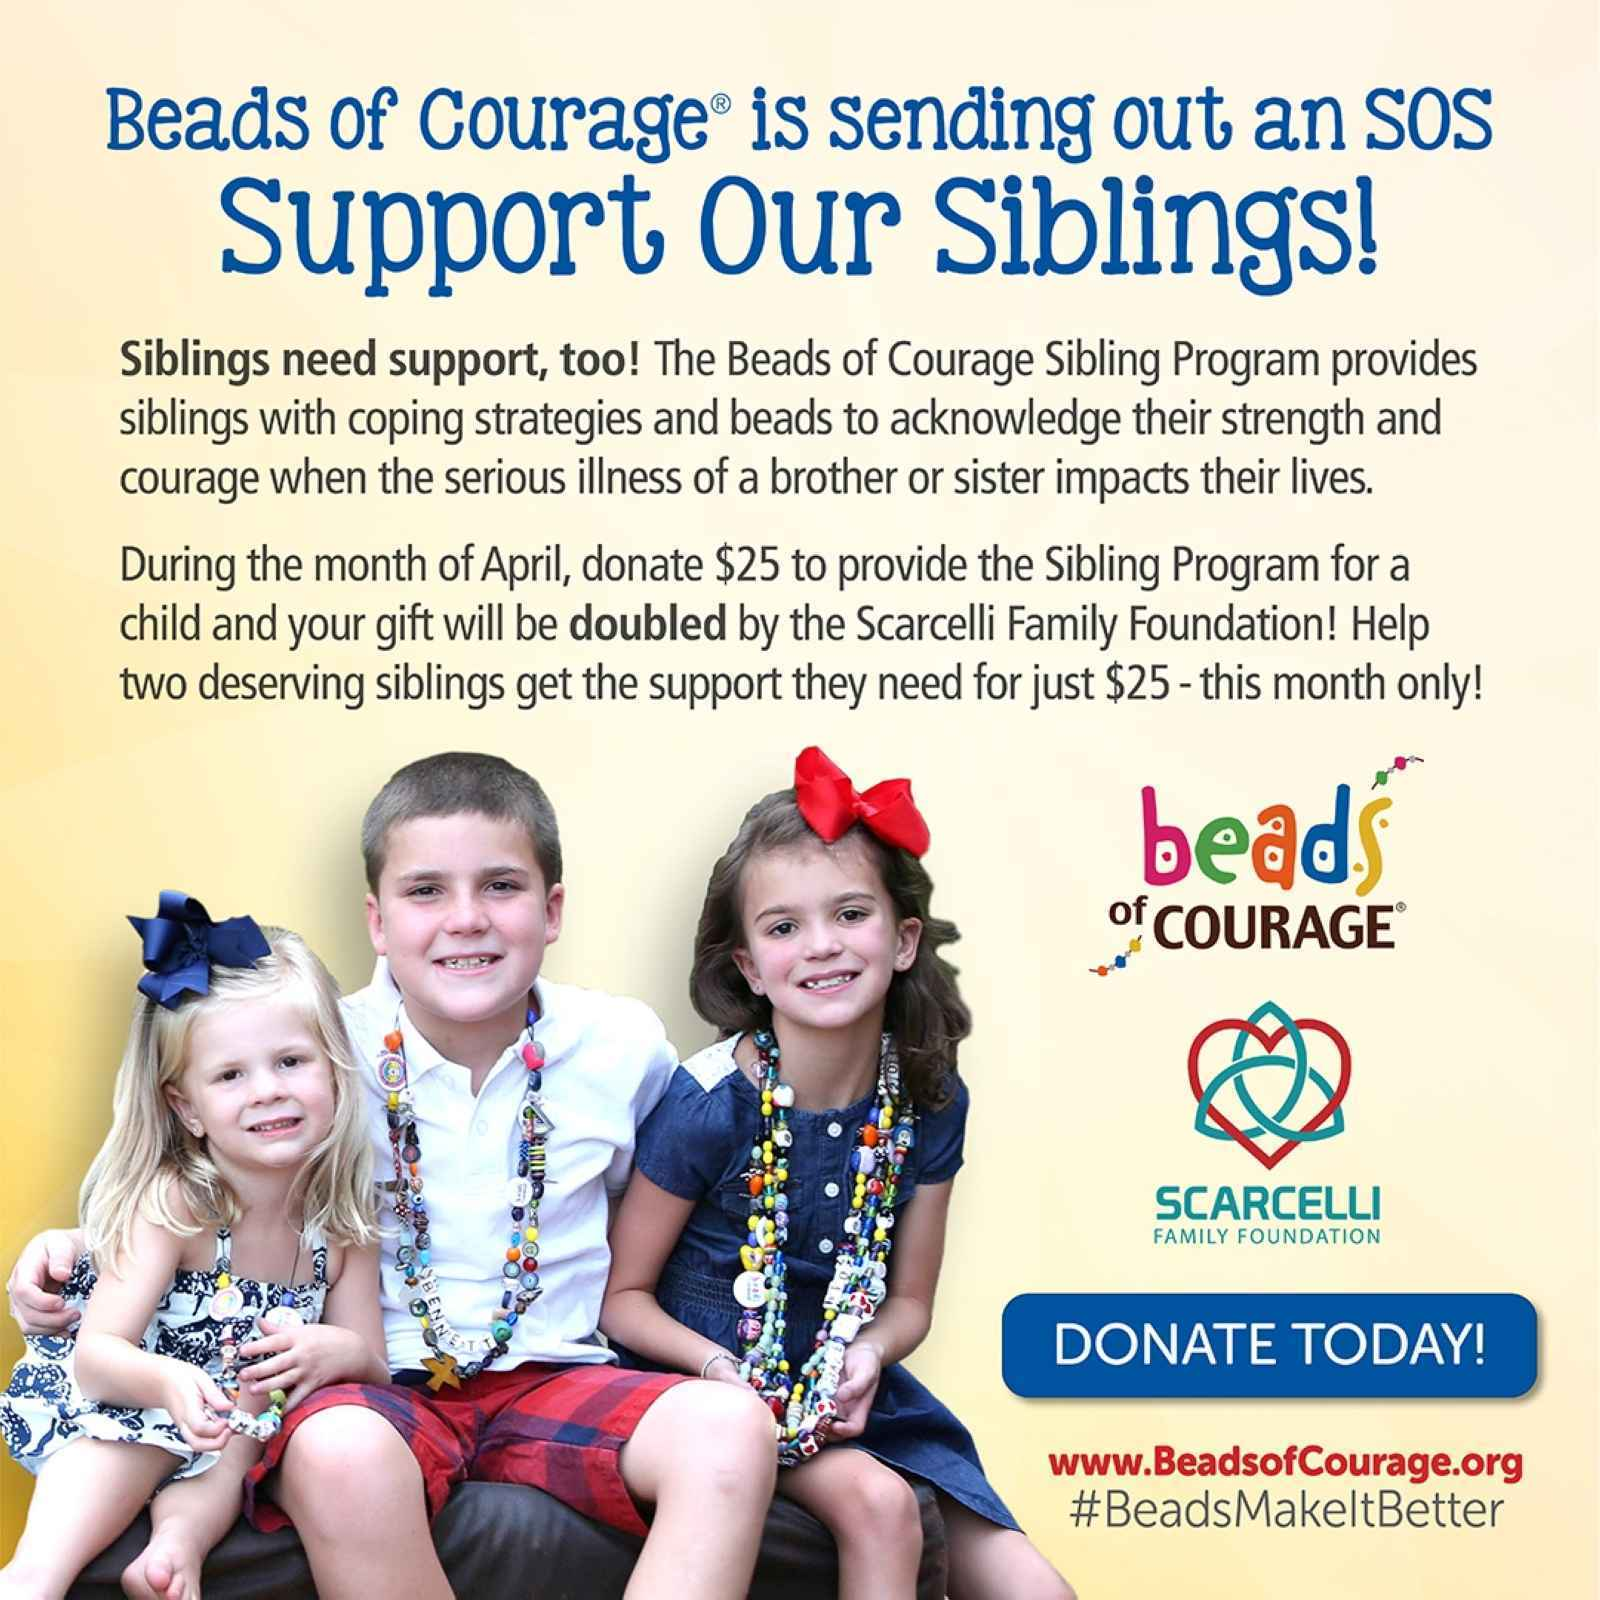 S.O.S! Siblings need support, too! image